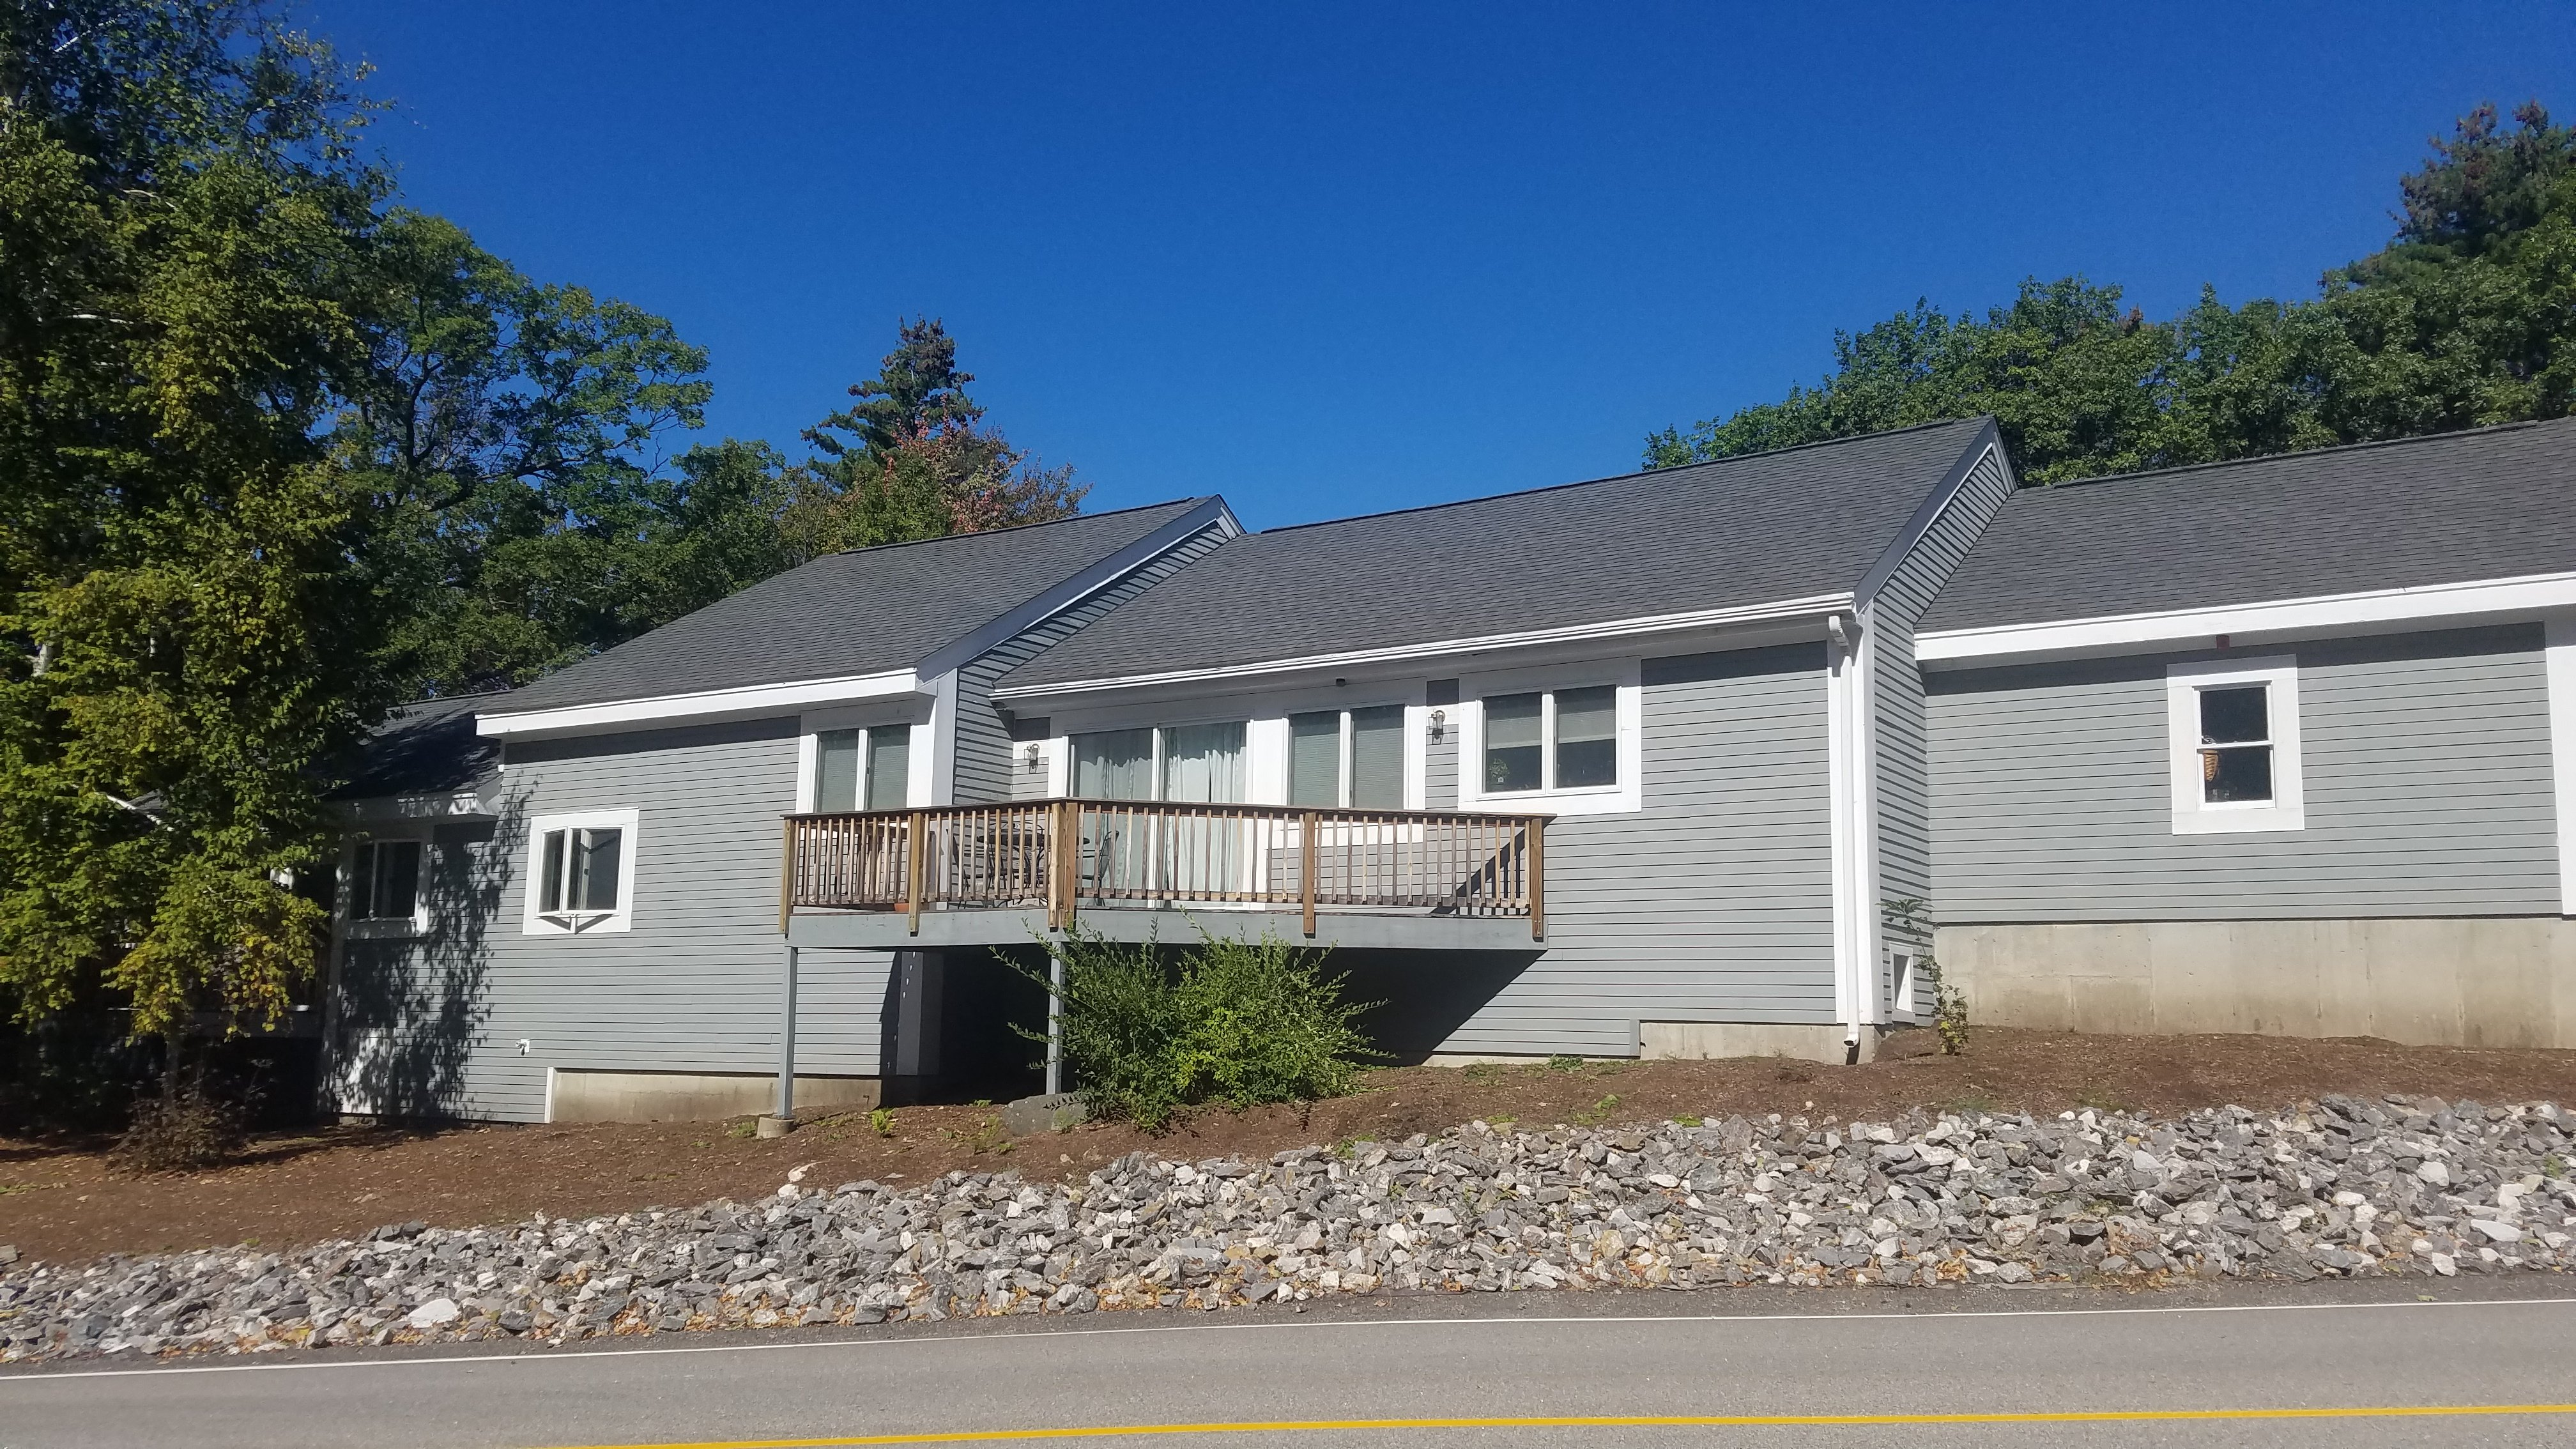 Roofing at #12 Taylor Community in Laconia NH by A.S.A.P. Roofing NH